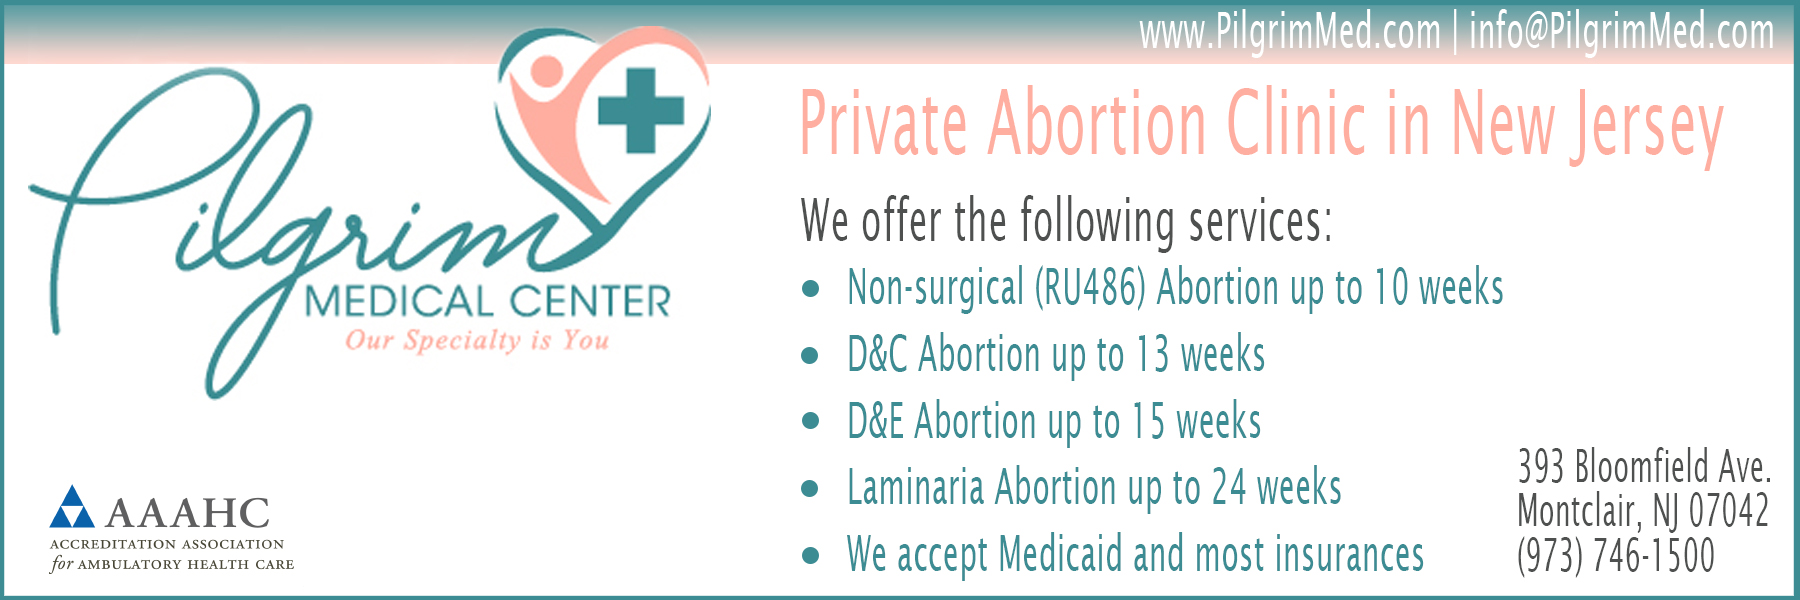 Pilgrim Medical Center - abortion clinic in New Jersey offering Abortion Pill, surgical abortions, in-clinic abortion